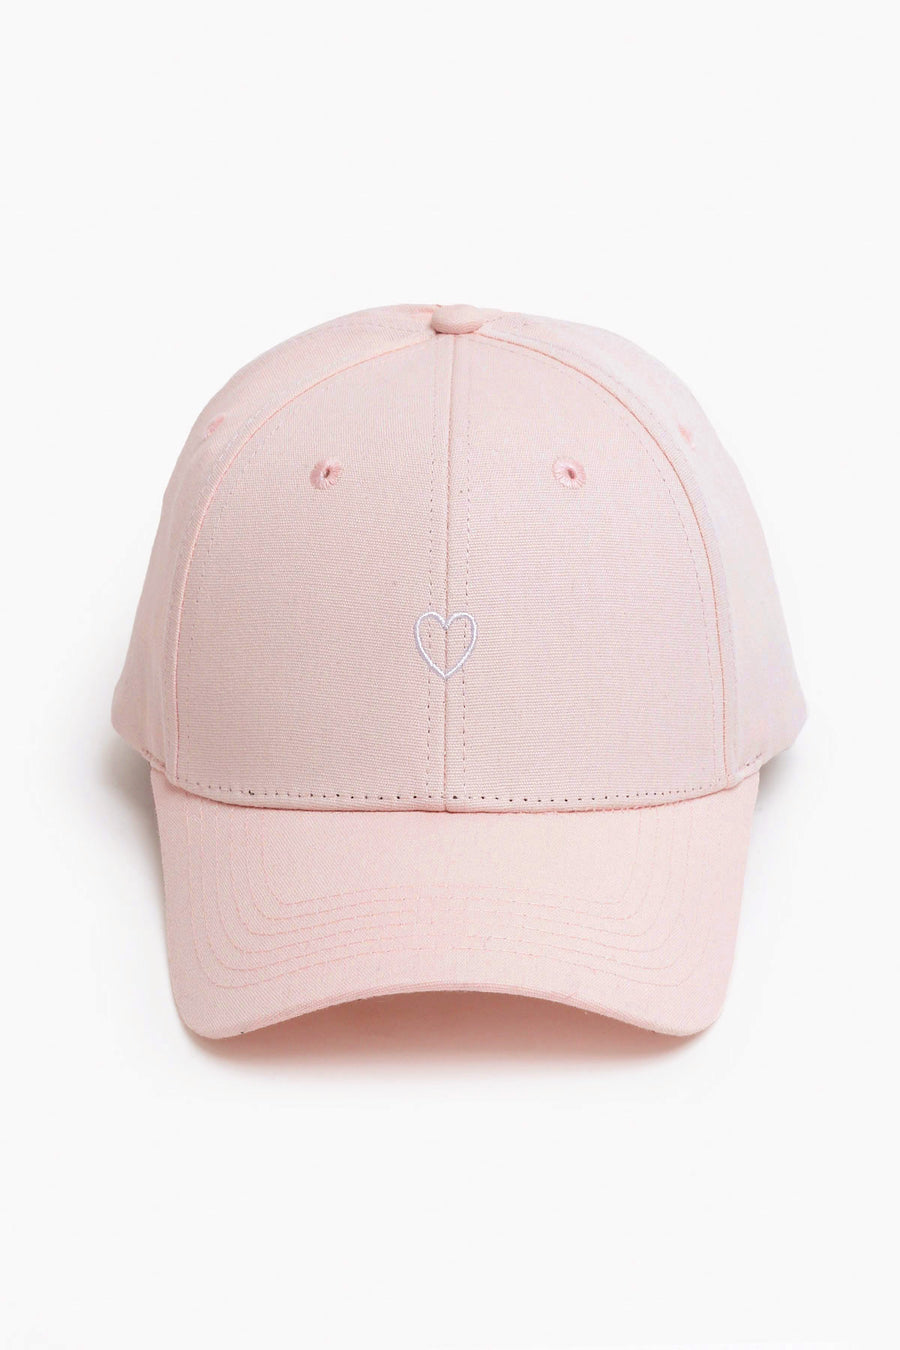 Little Heart High Ponytail Cap - Baby Pink